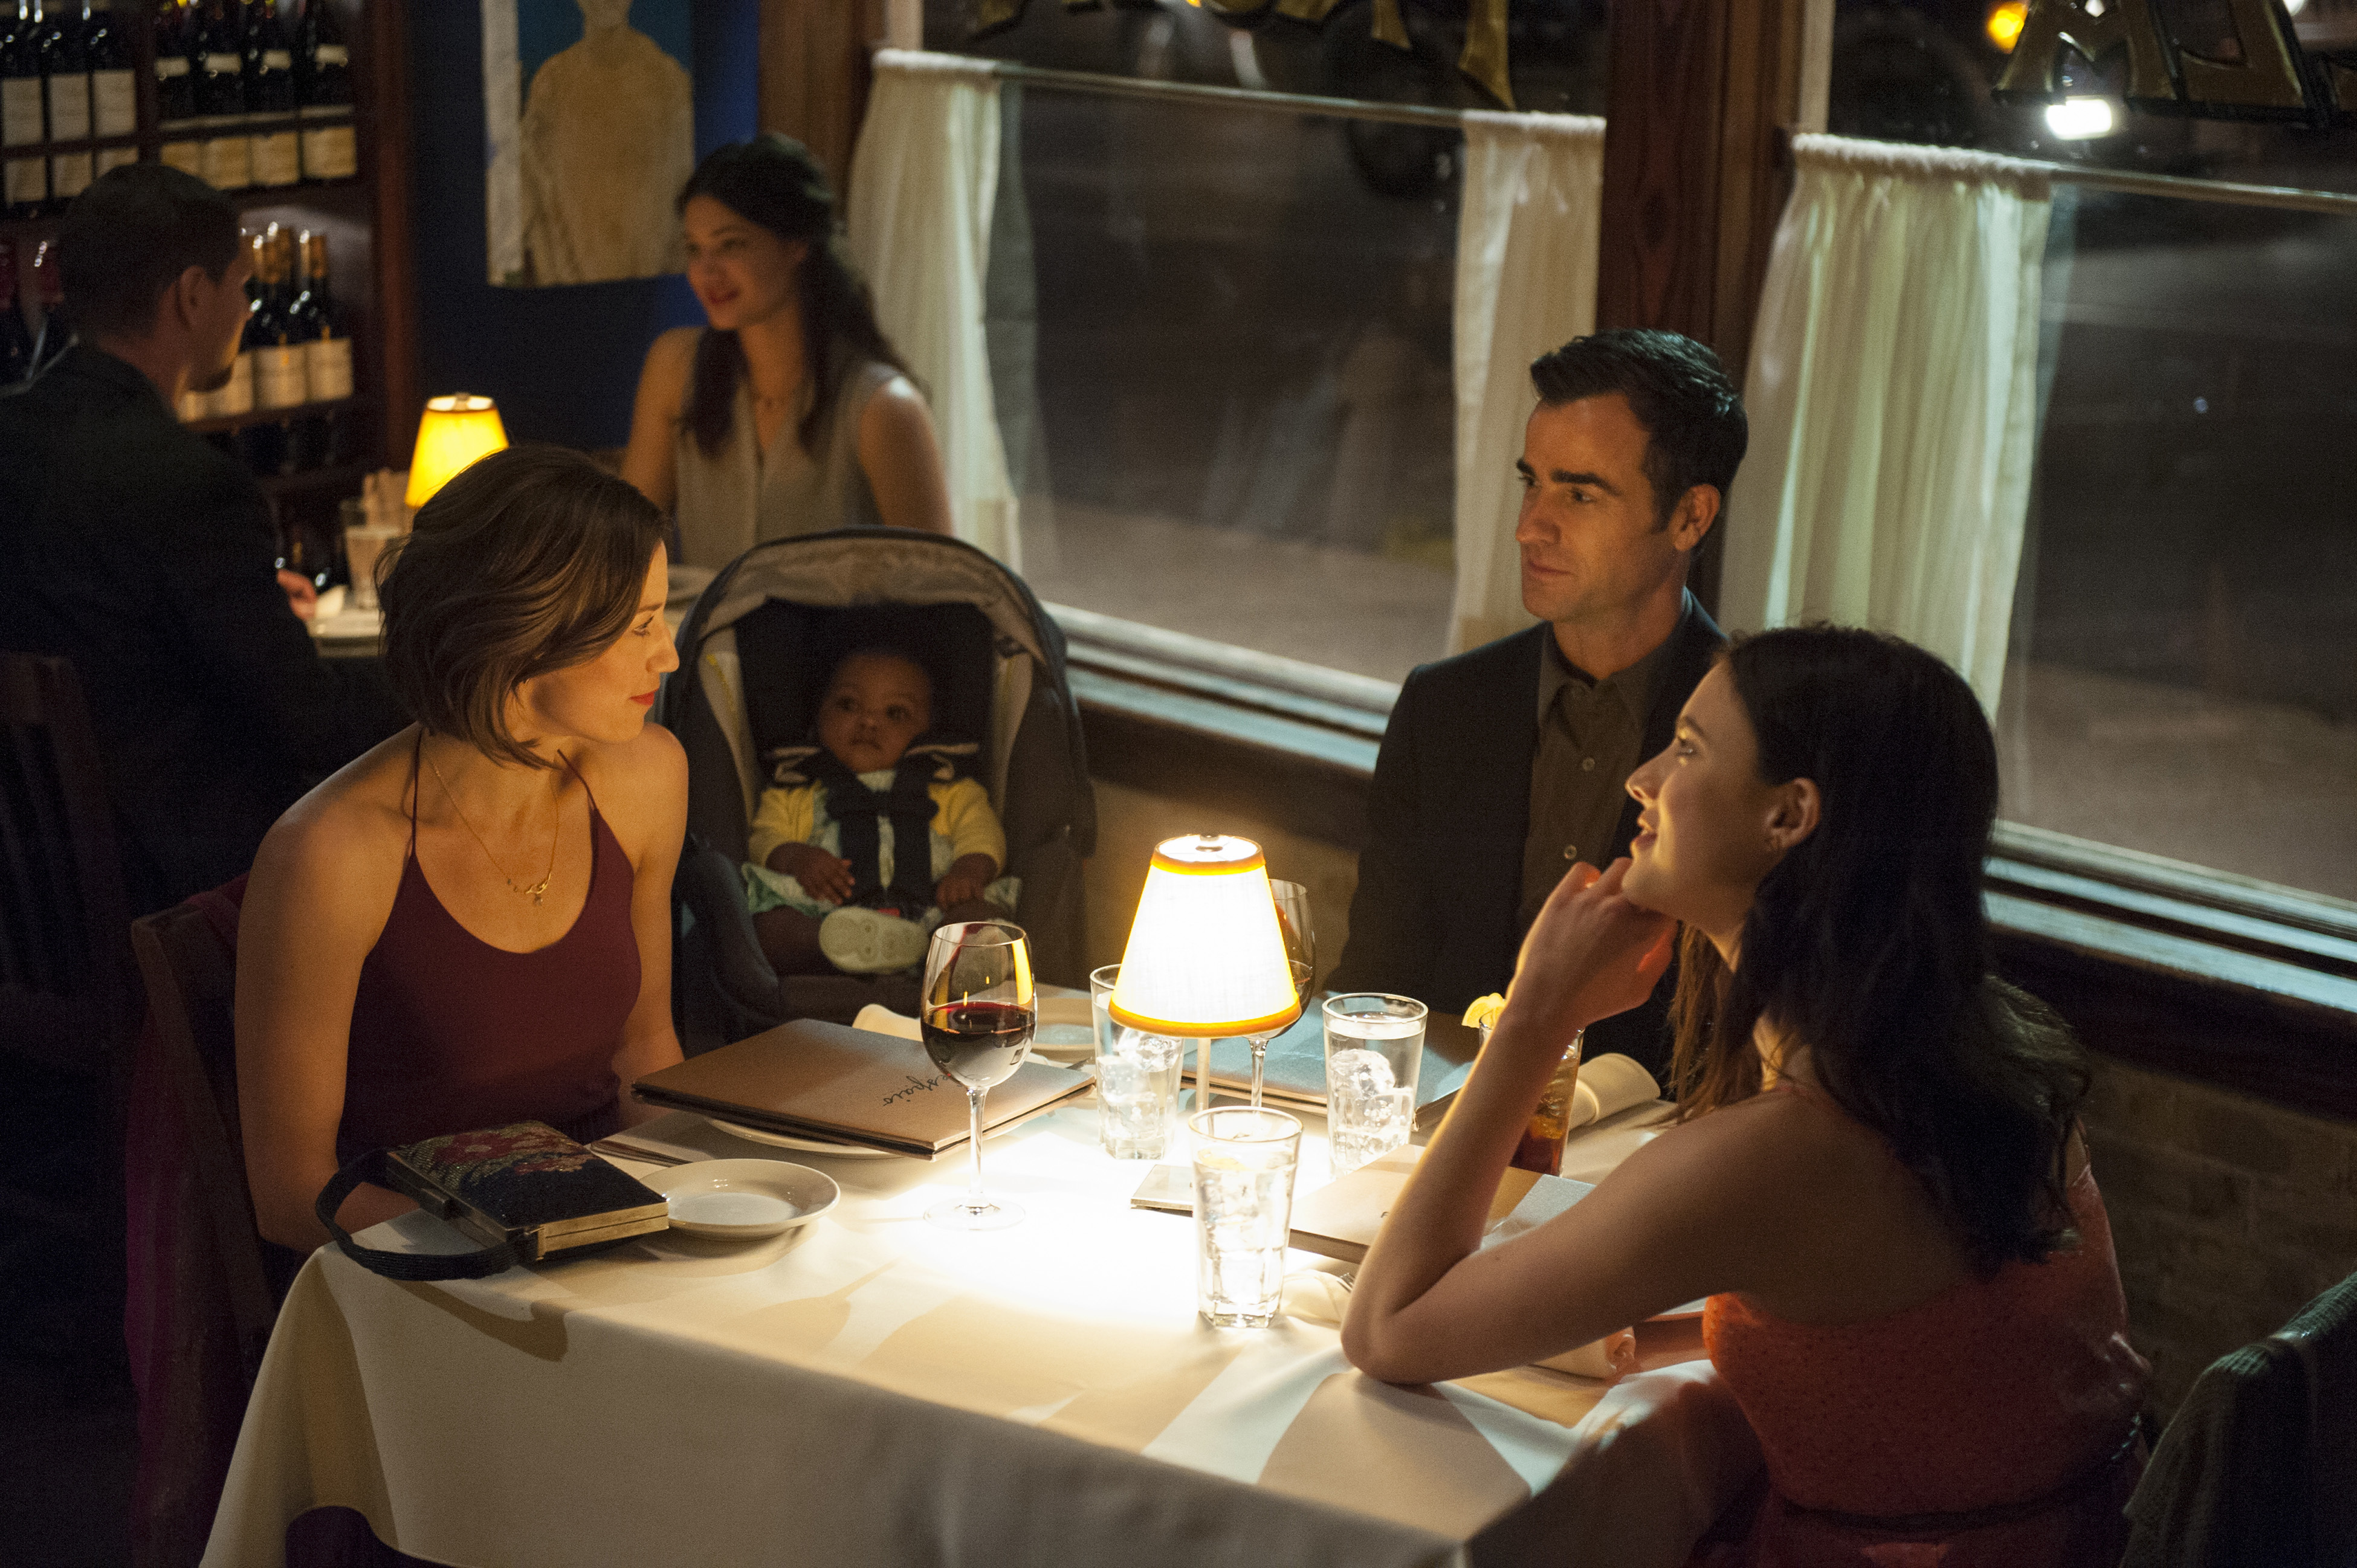 Still of Justin Theroux, Carrie Coon and Margaret Qualley in The Leftovers (2014)